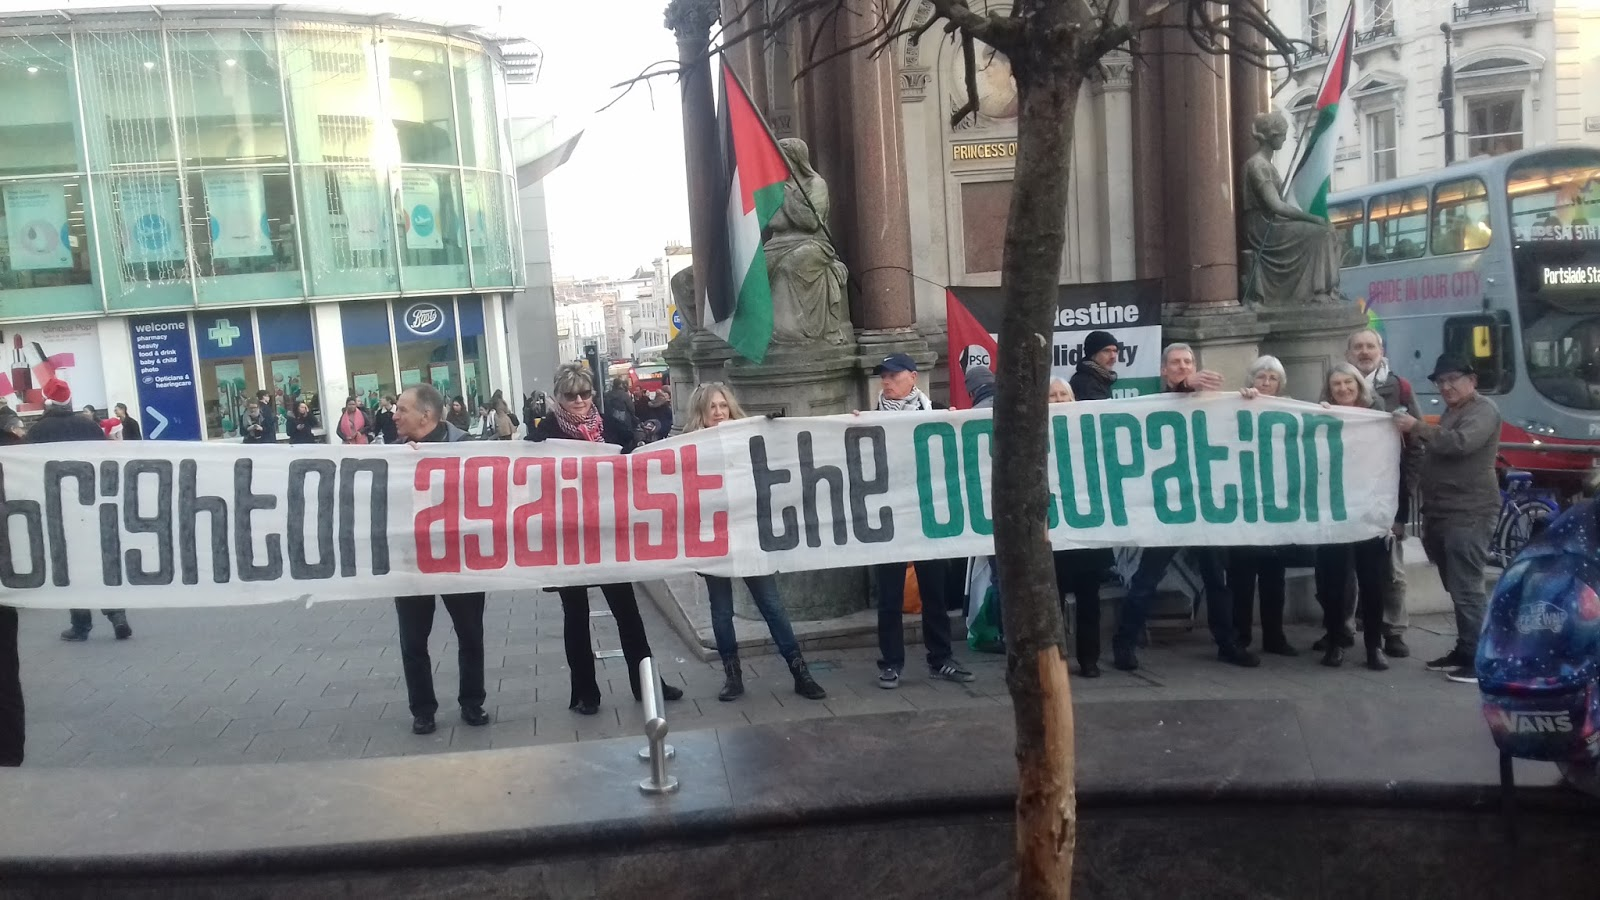 Tony Greenstein Blog: Tony Greenstein's Blog: Fighting Back Against Zionism And